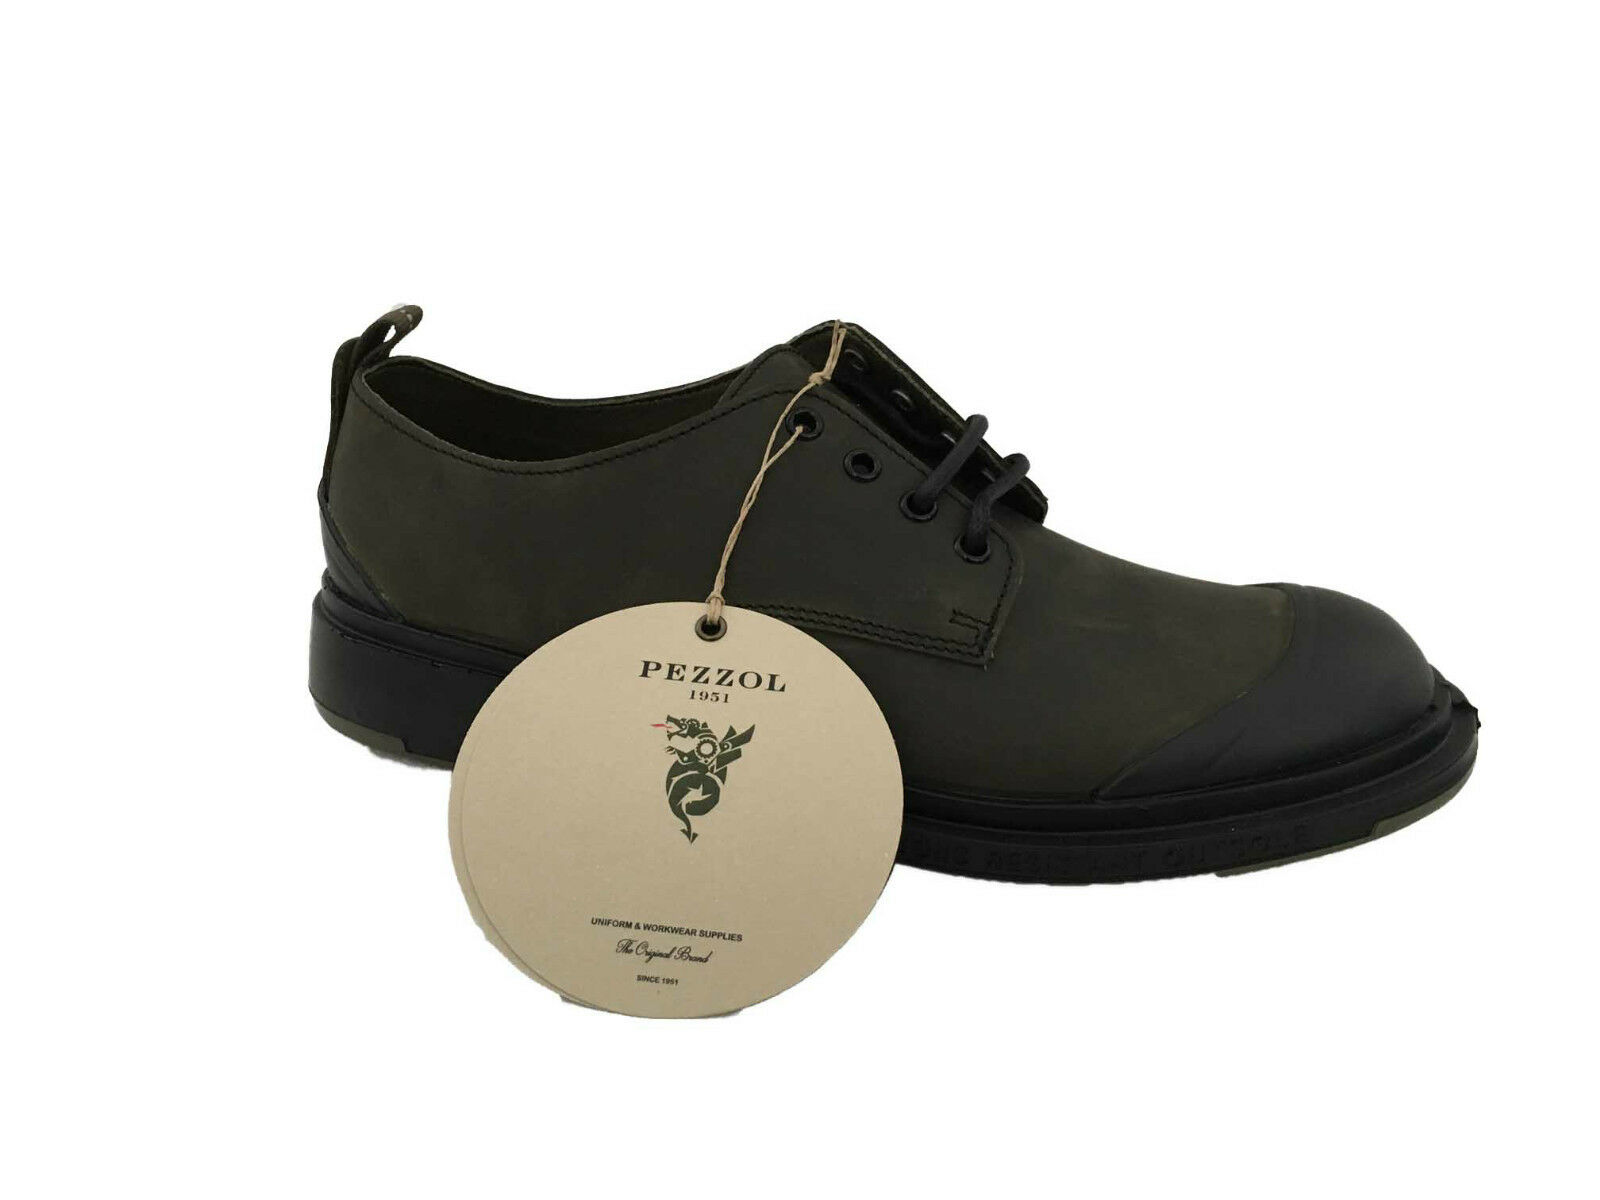 PEZZOL1951 Zapatos hombre 009FZ-10 in  gomma verde mod DEFENDER 009FZ-10 hombre MADE ITALY c98881